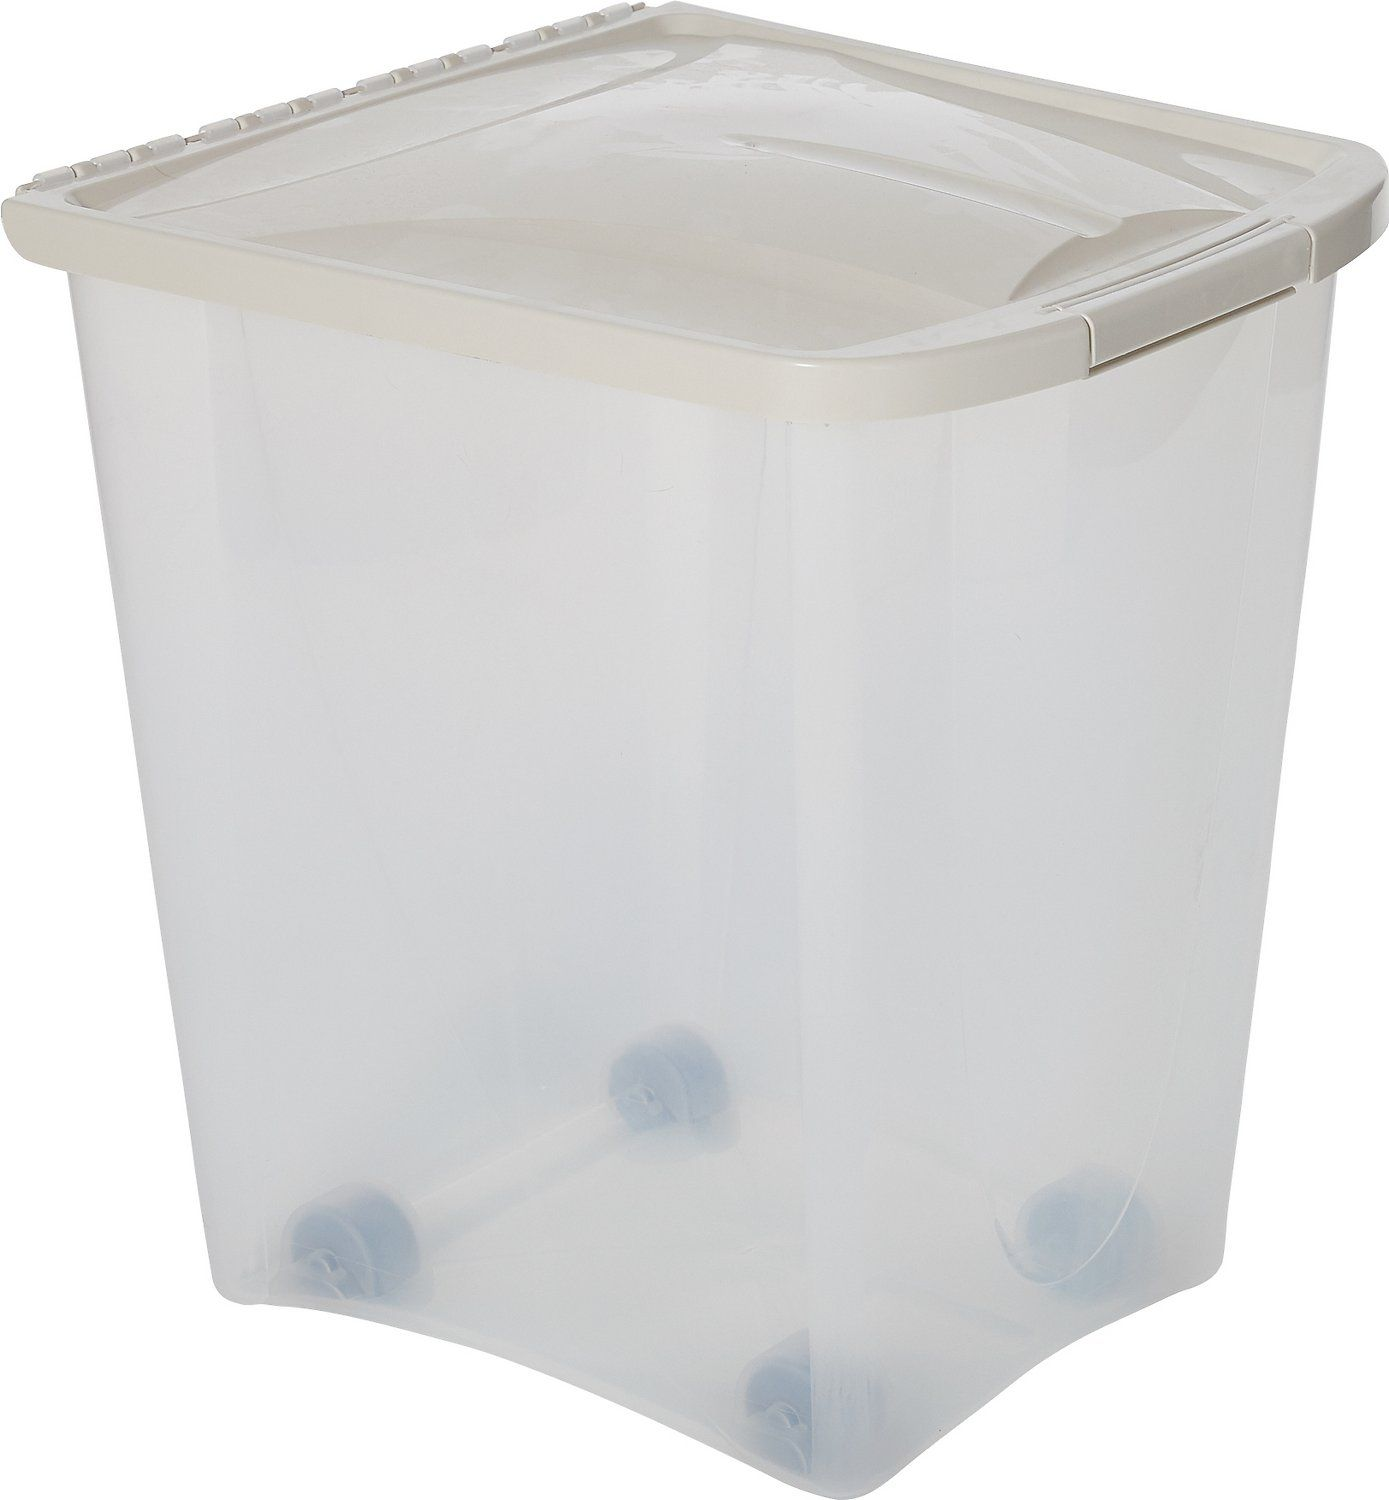 Van Ness Pet Food Storage Containers Are The Latest In A Long Line Of Van Ness Category Innovations Th Pet Food Storage Container Pet Food Storage Food Animals